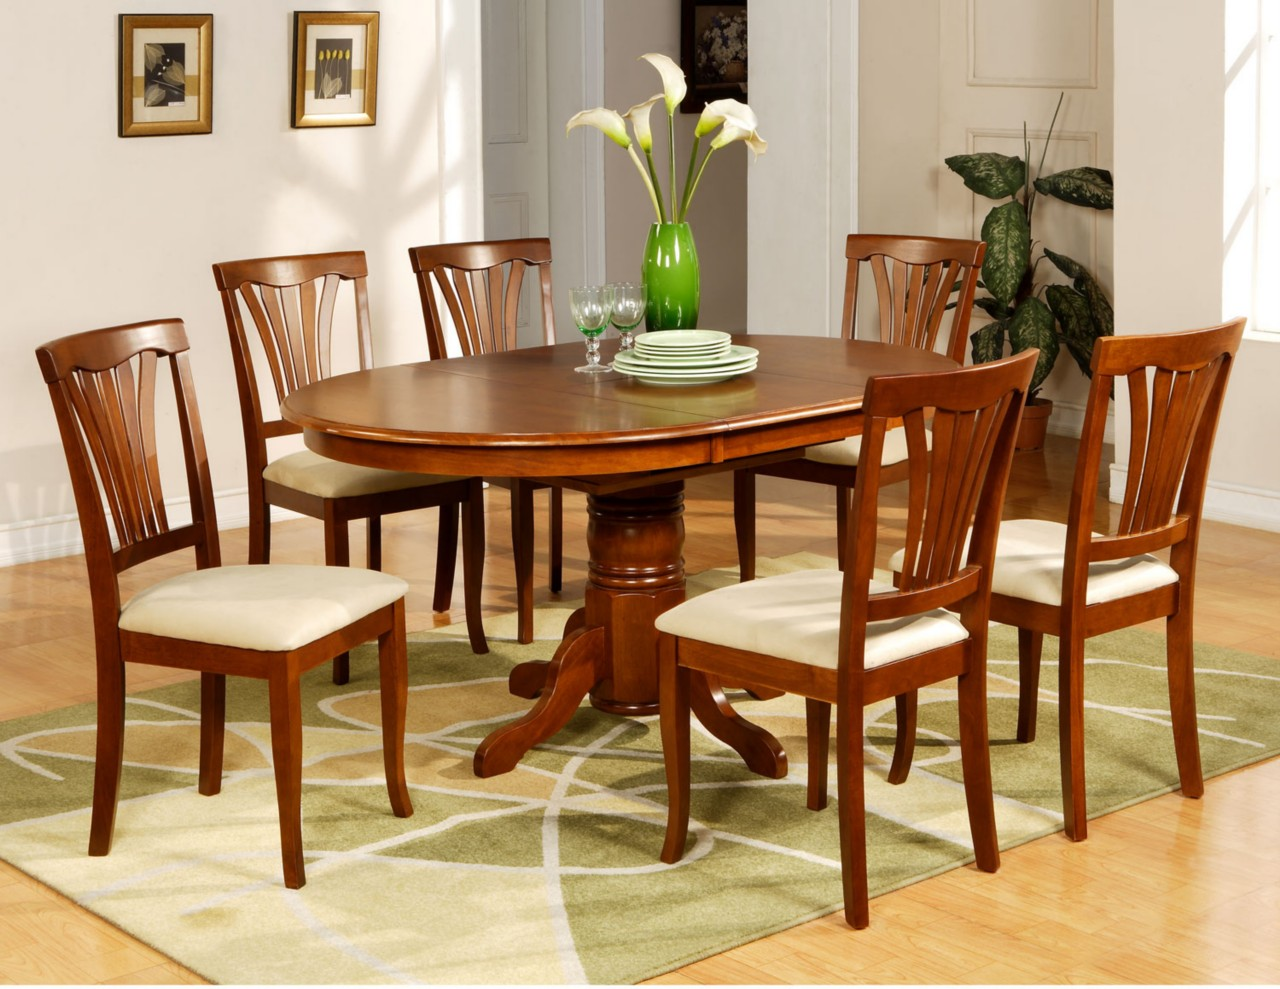 7 pc avon oval dinette kitchen dining room table with 6 for Dining room table and chair ideas